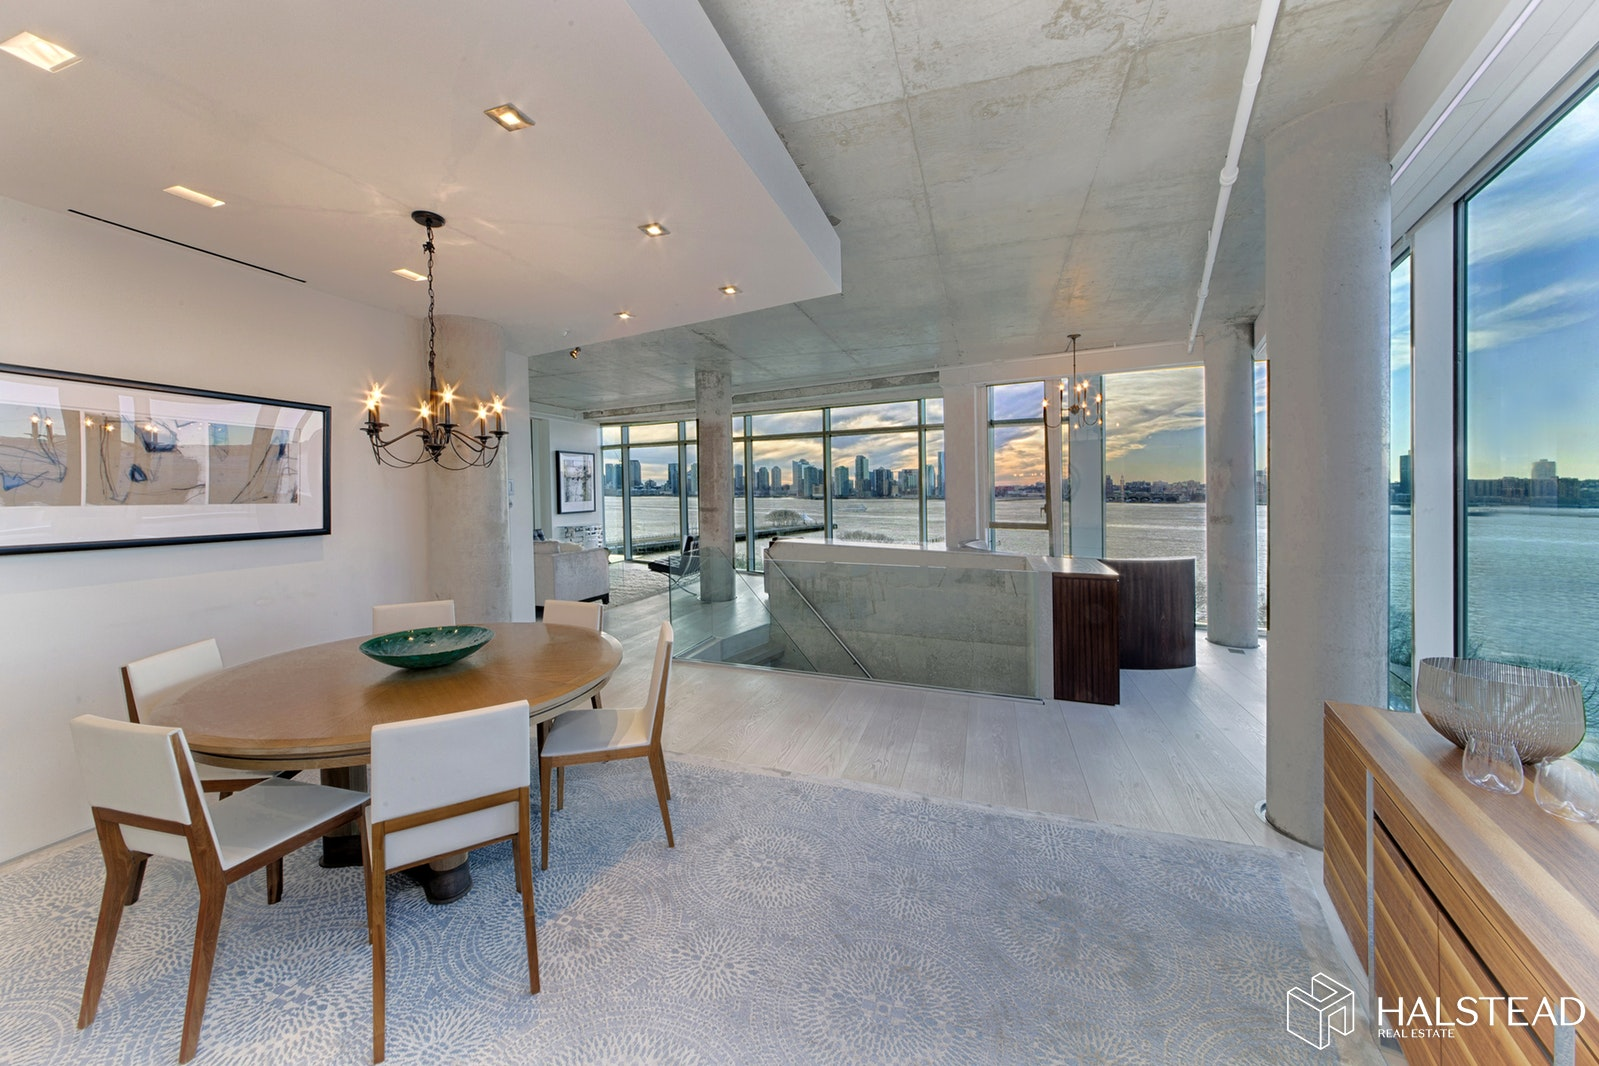 173 PERRY STREET 7, West Village, $11,500,000, Web #: 19452452